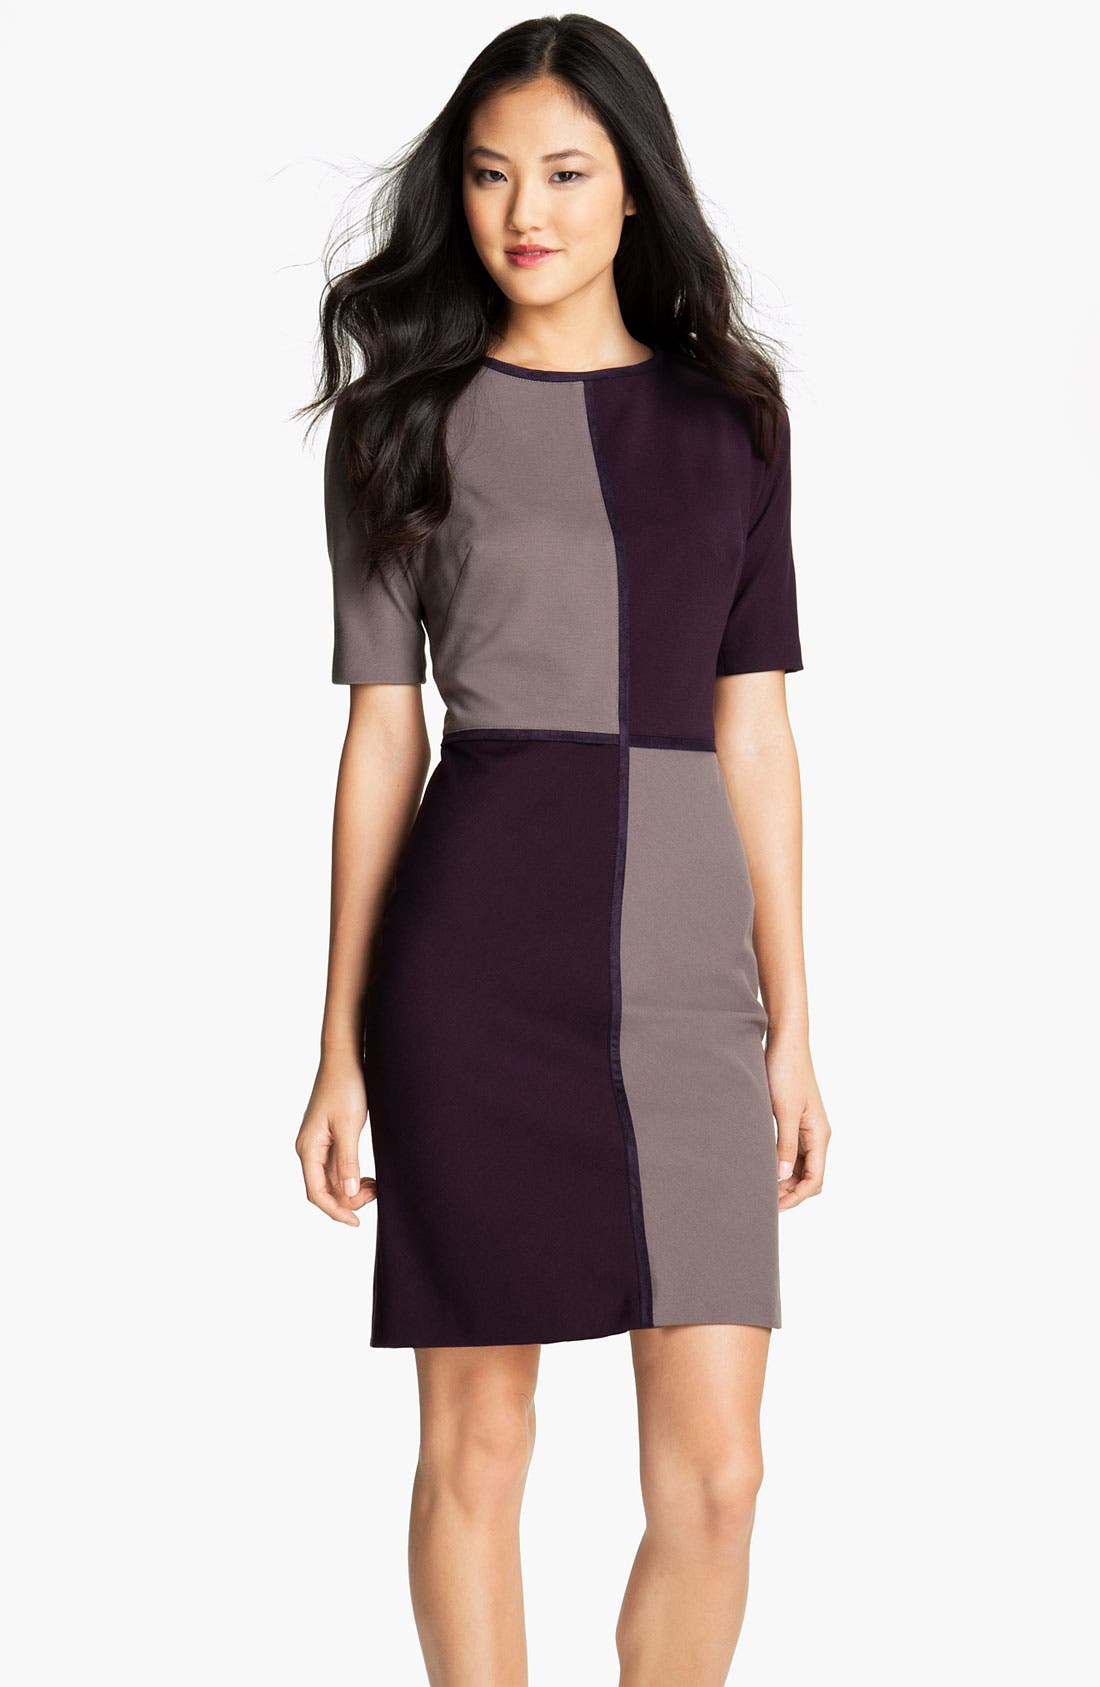 Alternate Image 1 Selected - Suzi Chin for Maggy Boutique Colorblock Sheath Dress (Petite)